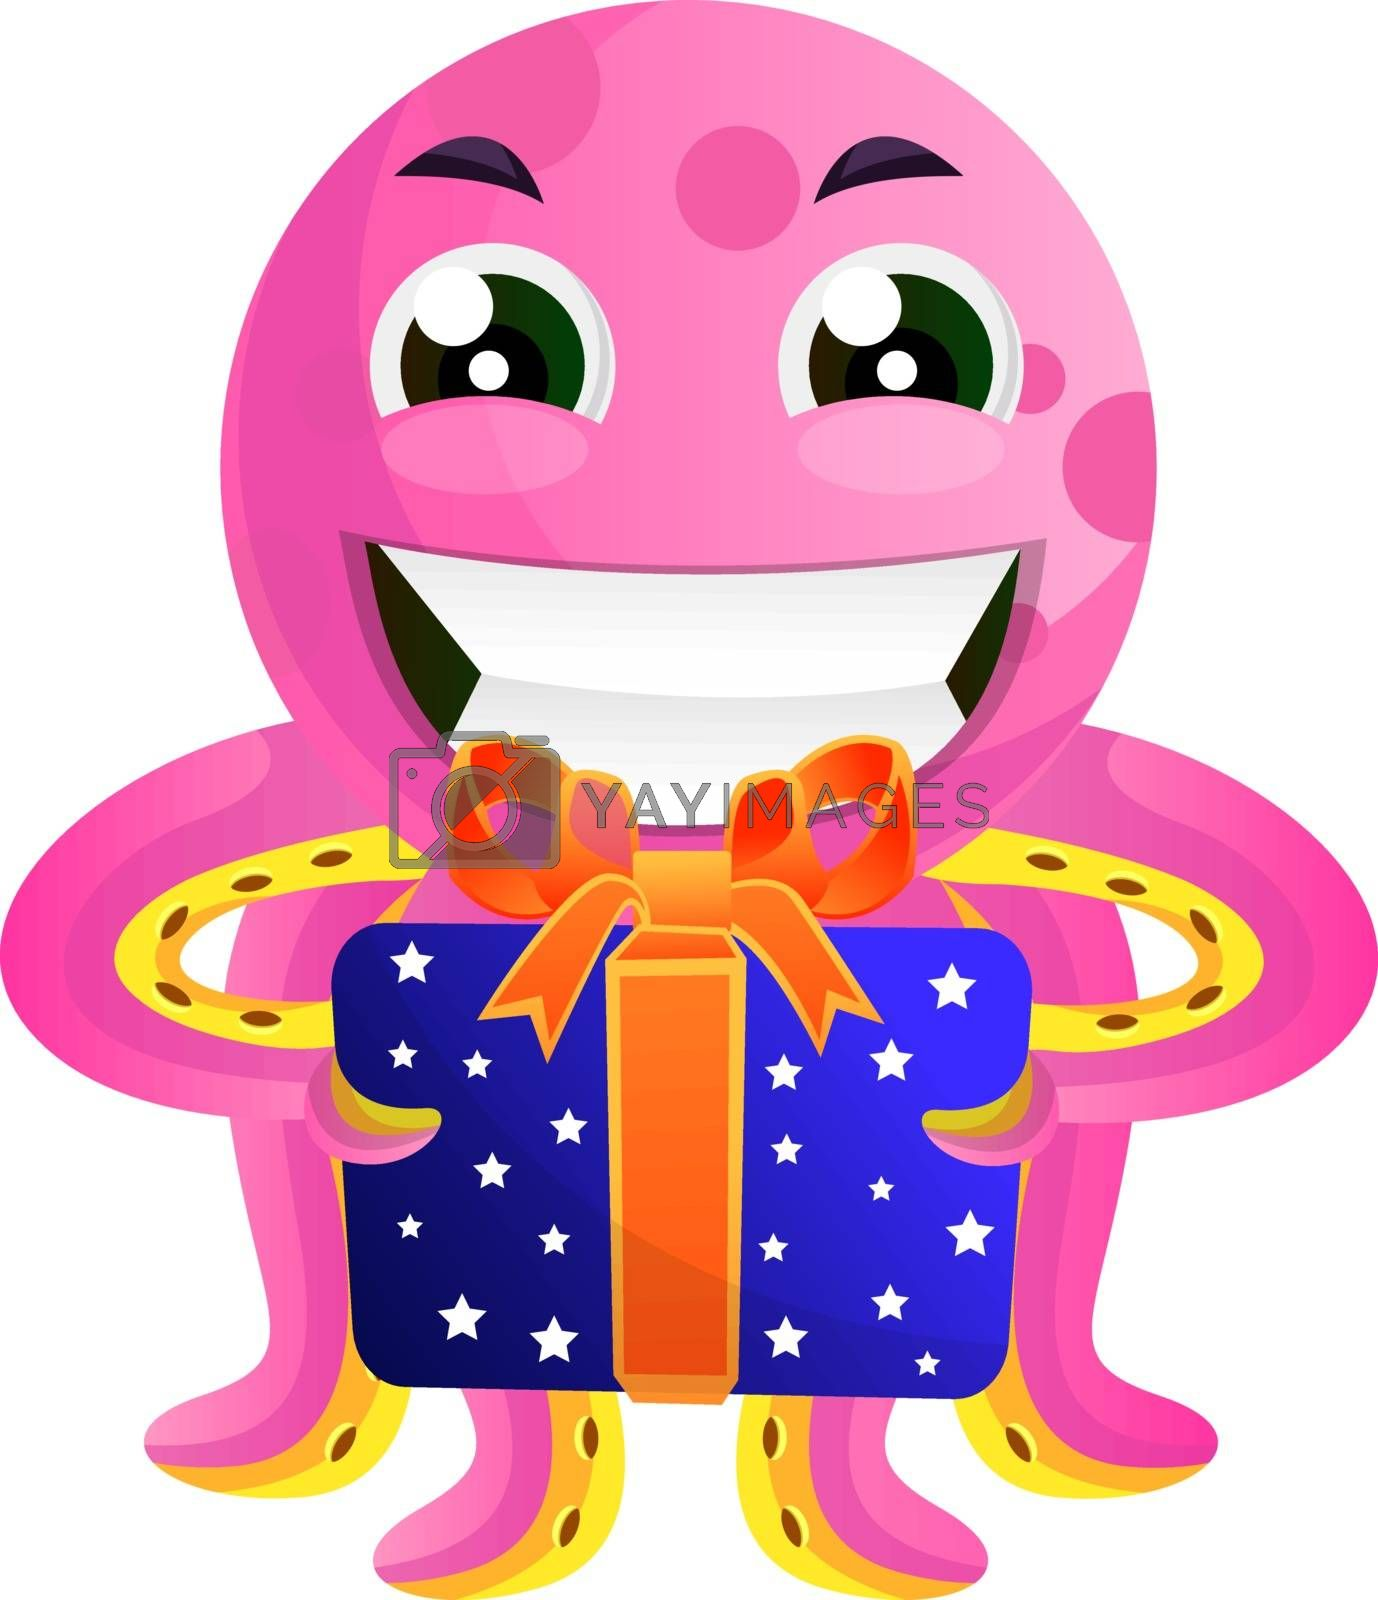 Royalty free image of Pink octopus with a present illustration vector on white backgro by Morphart